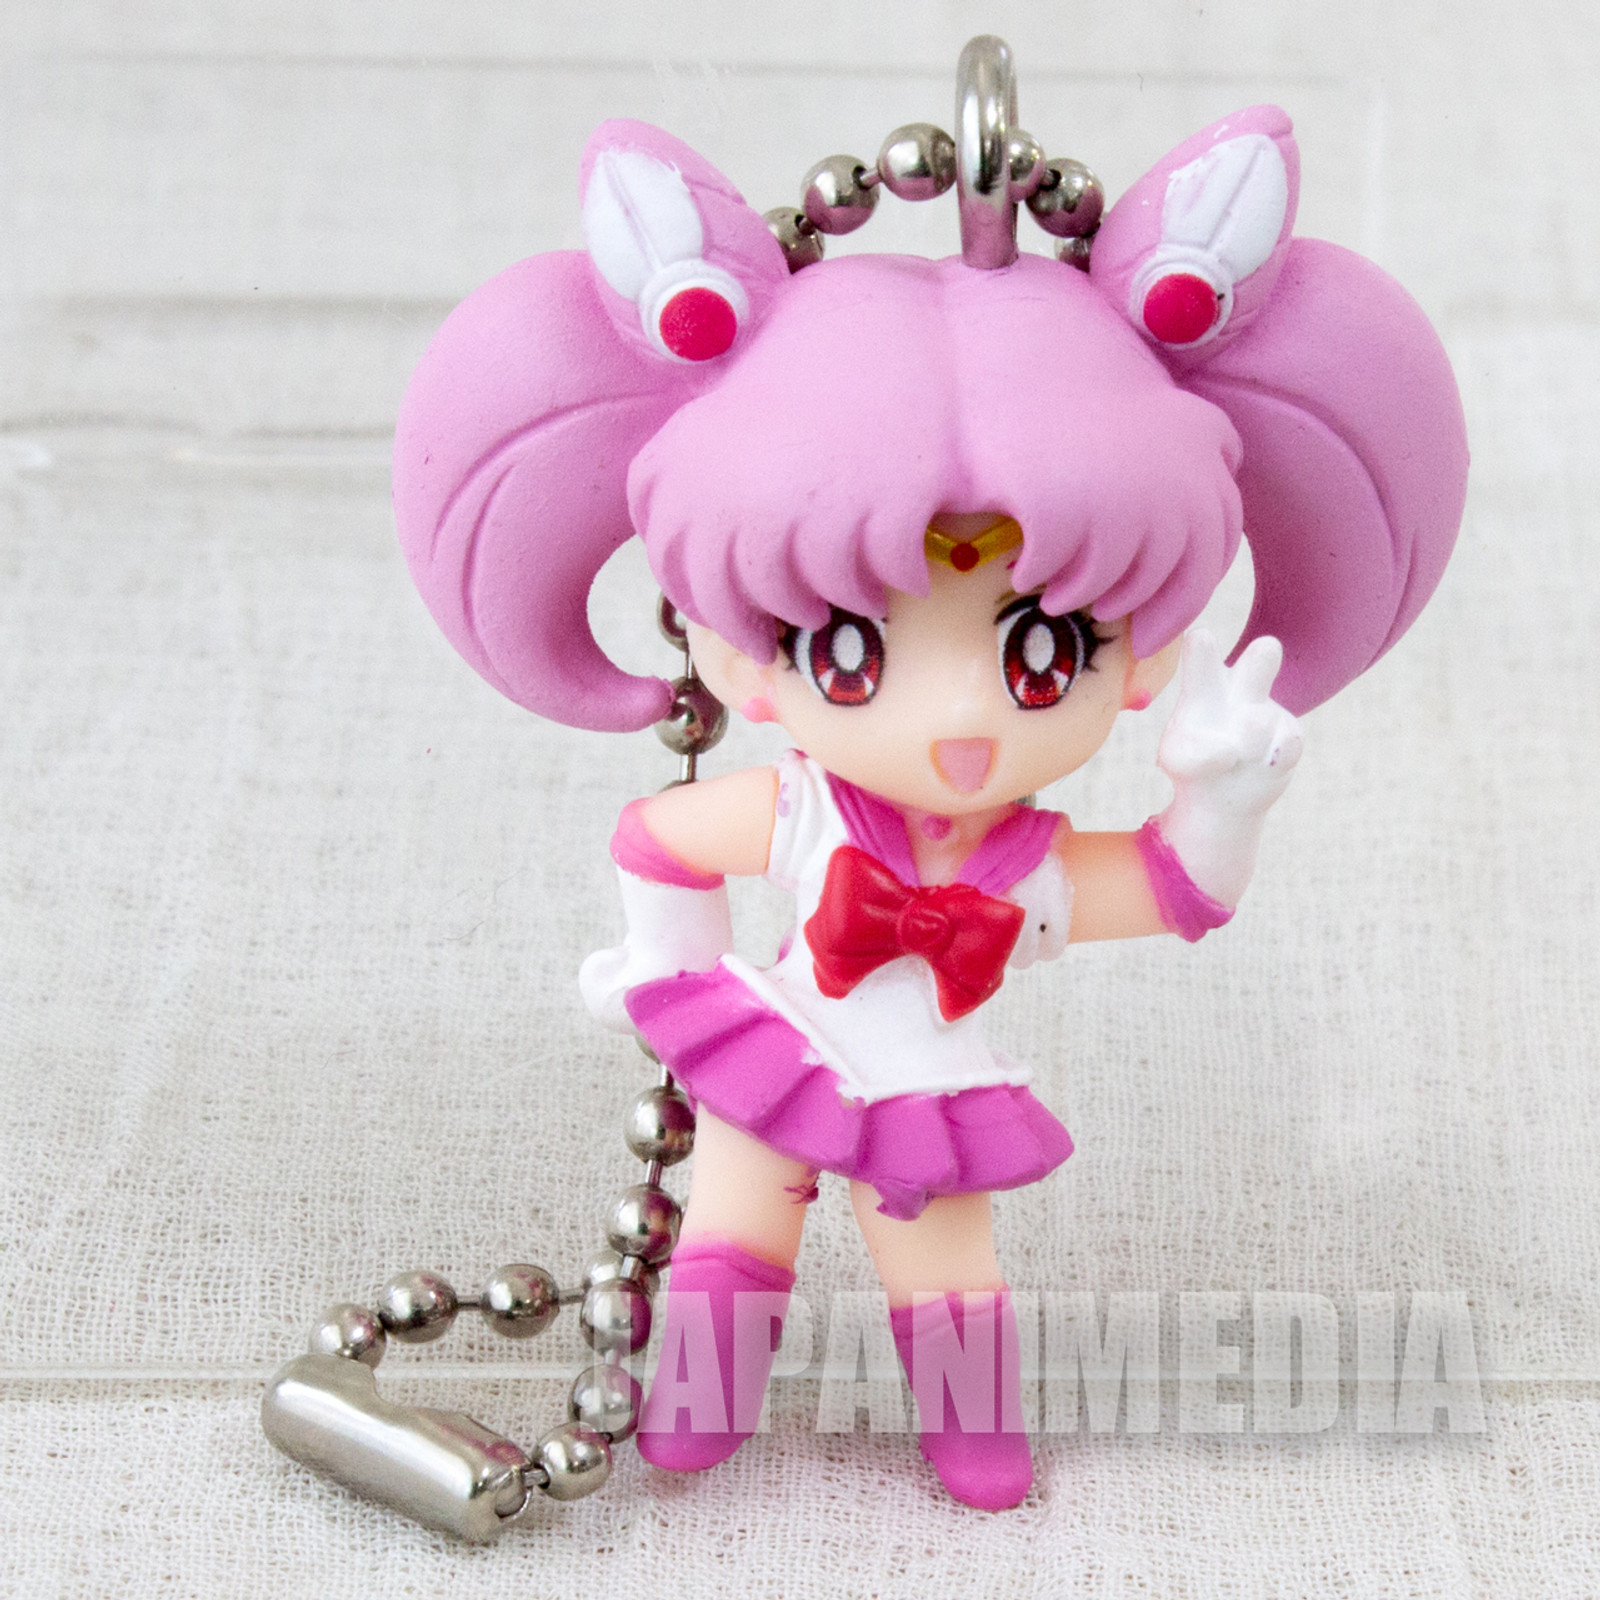 Sailor Moon Sailor Chibi Moon (Chibiusa) Sailor Swing 3 Figure Keychain JAPAN ANIME MANGA